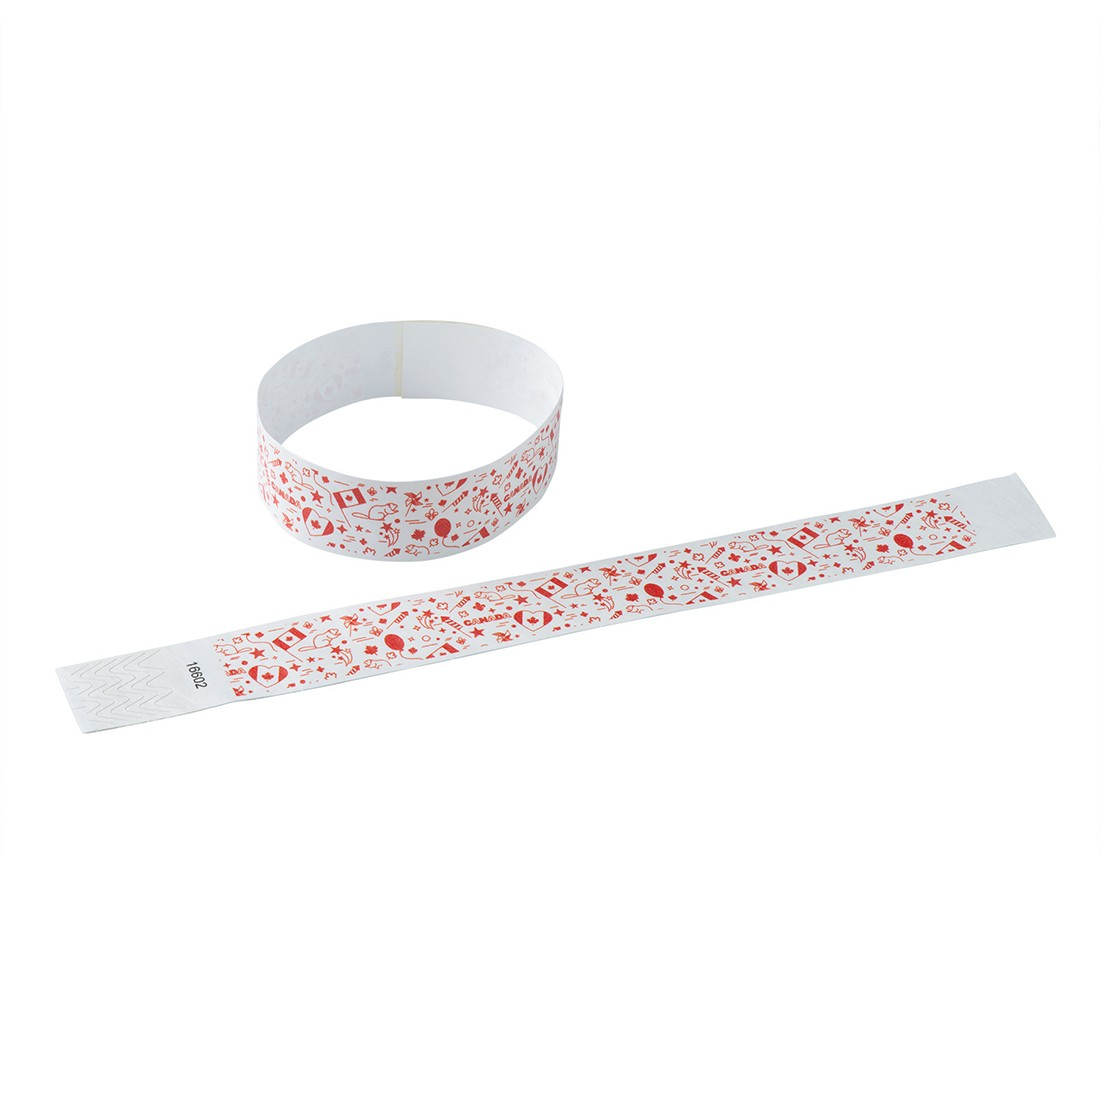 100 Canadian Celebration Adhesive Wristb [image]